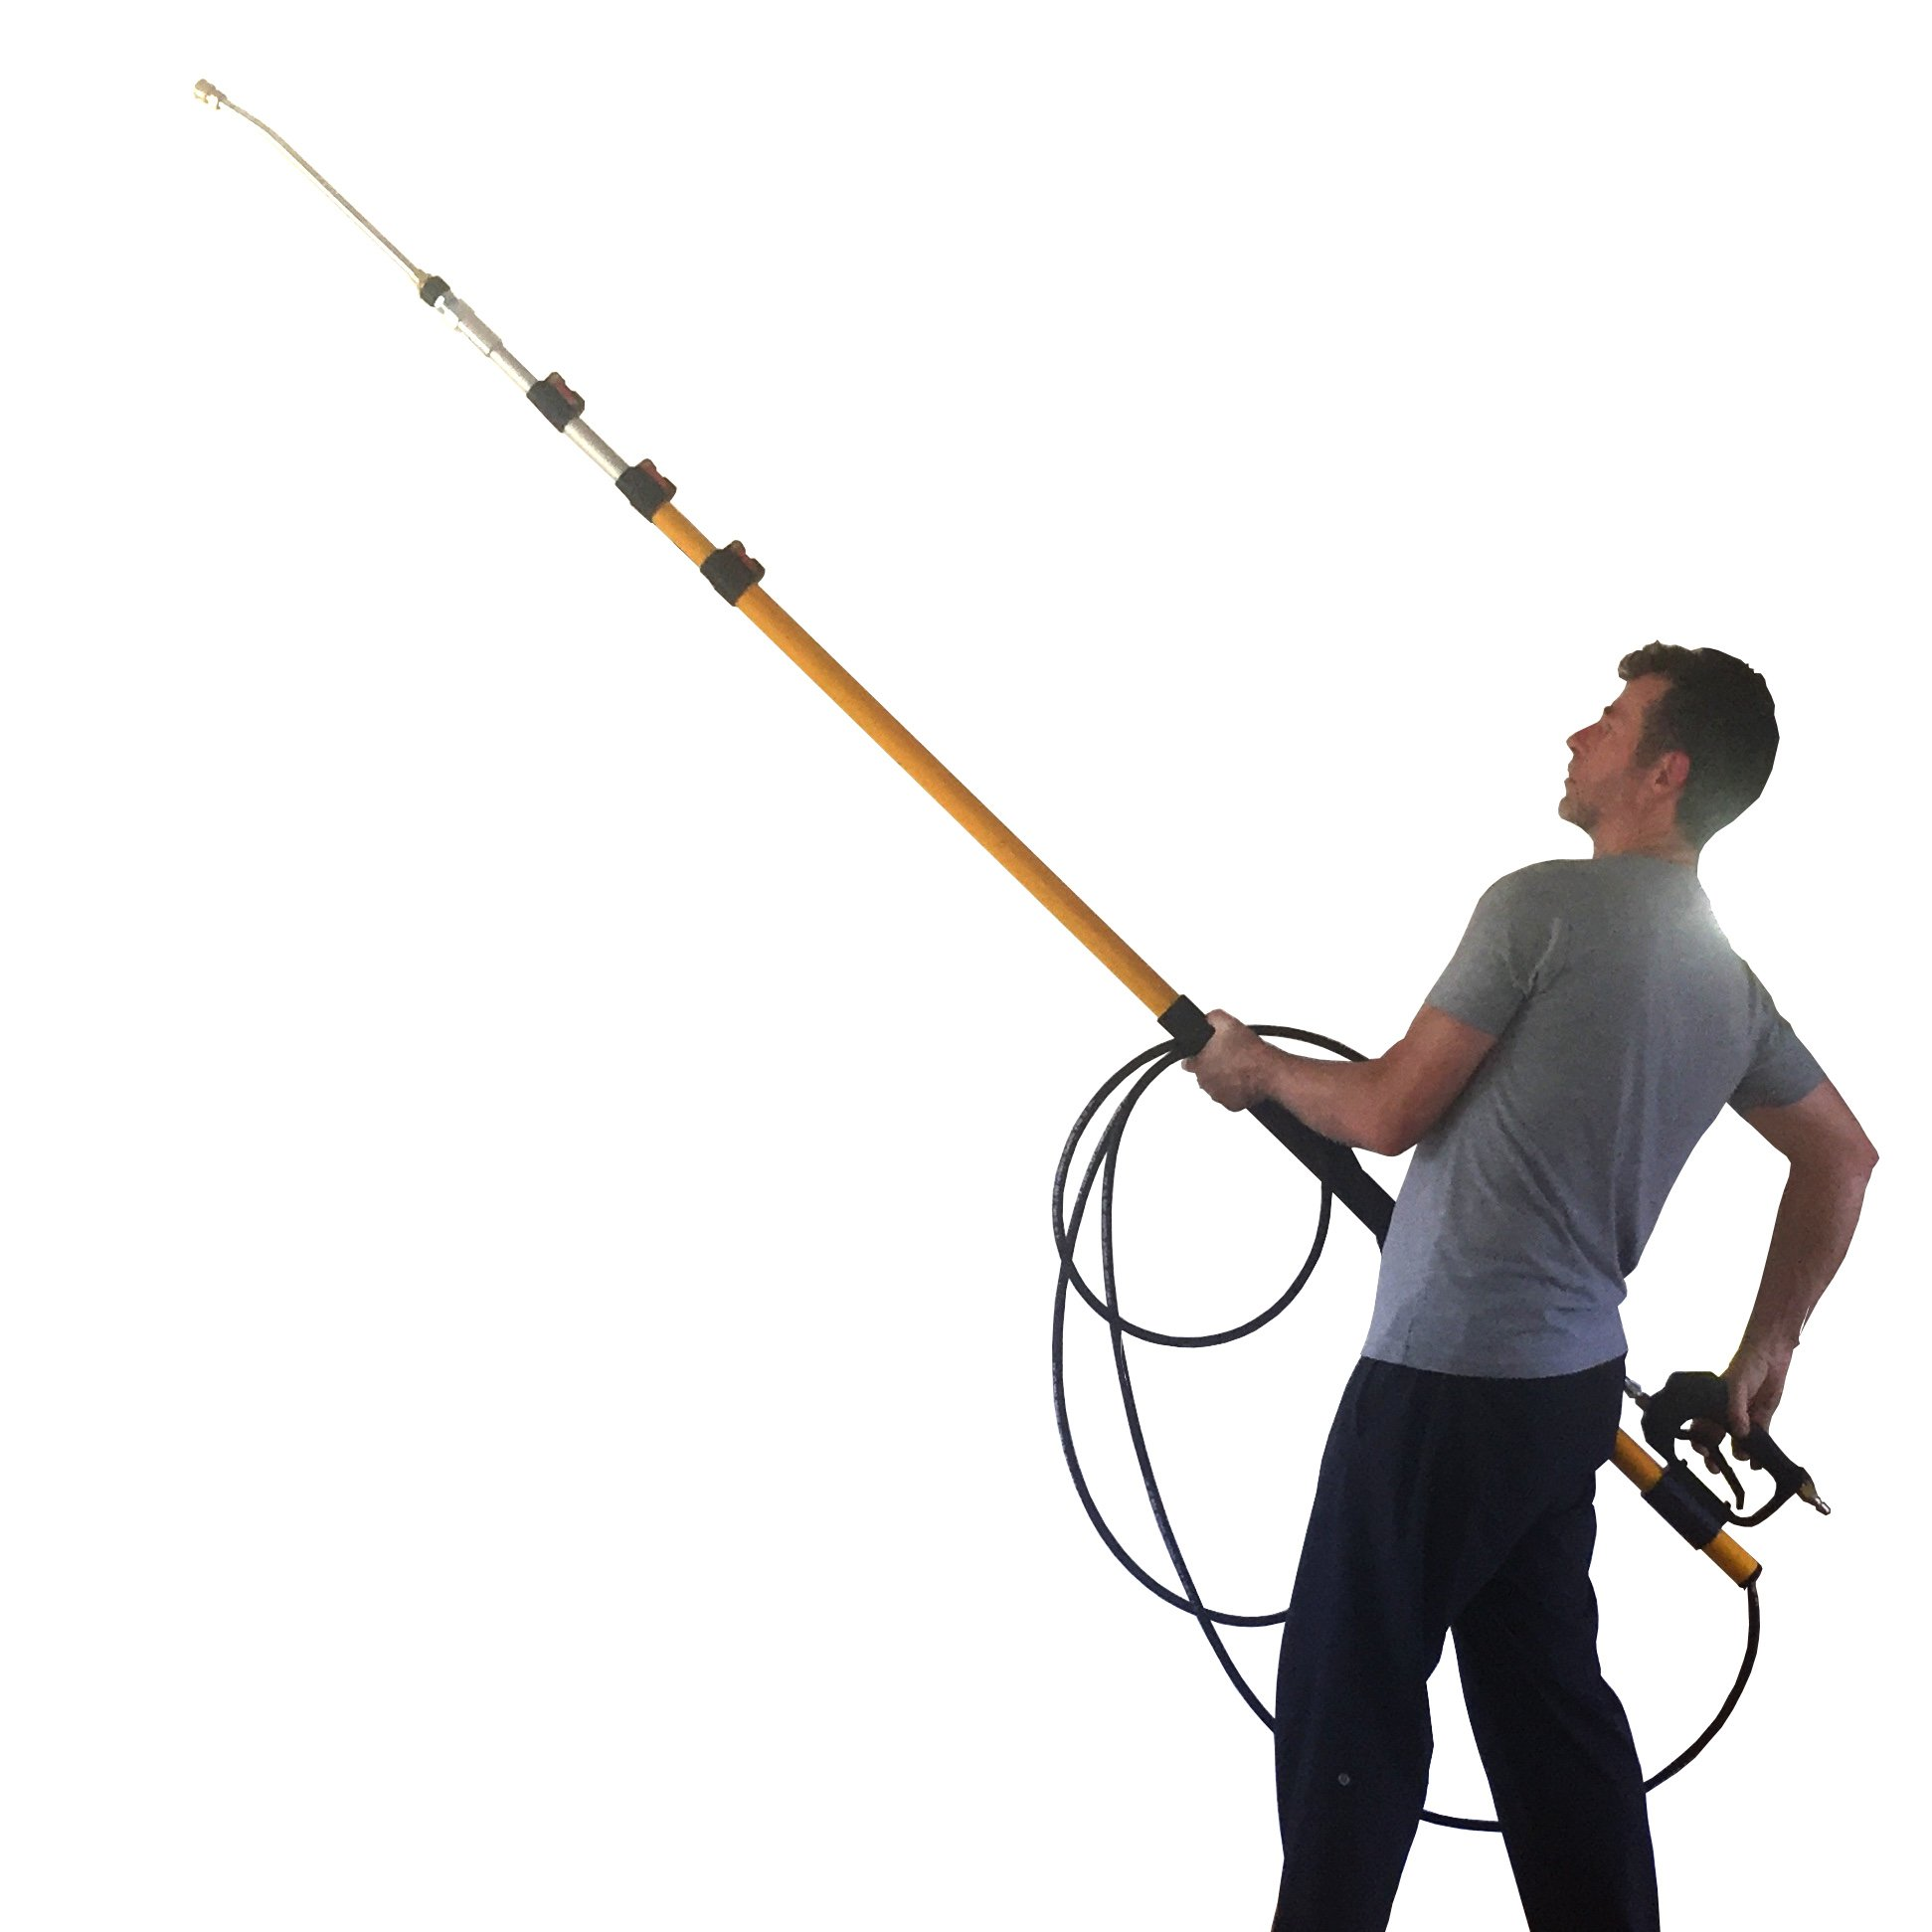 EQUIPMAXX 24 feet Long Giraffe Telescoping Lance for Pressure Washers, Extendable, 4 Sections, up to 4000 psi, 8GPM by EQUIPMAXX